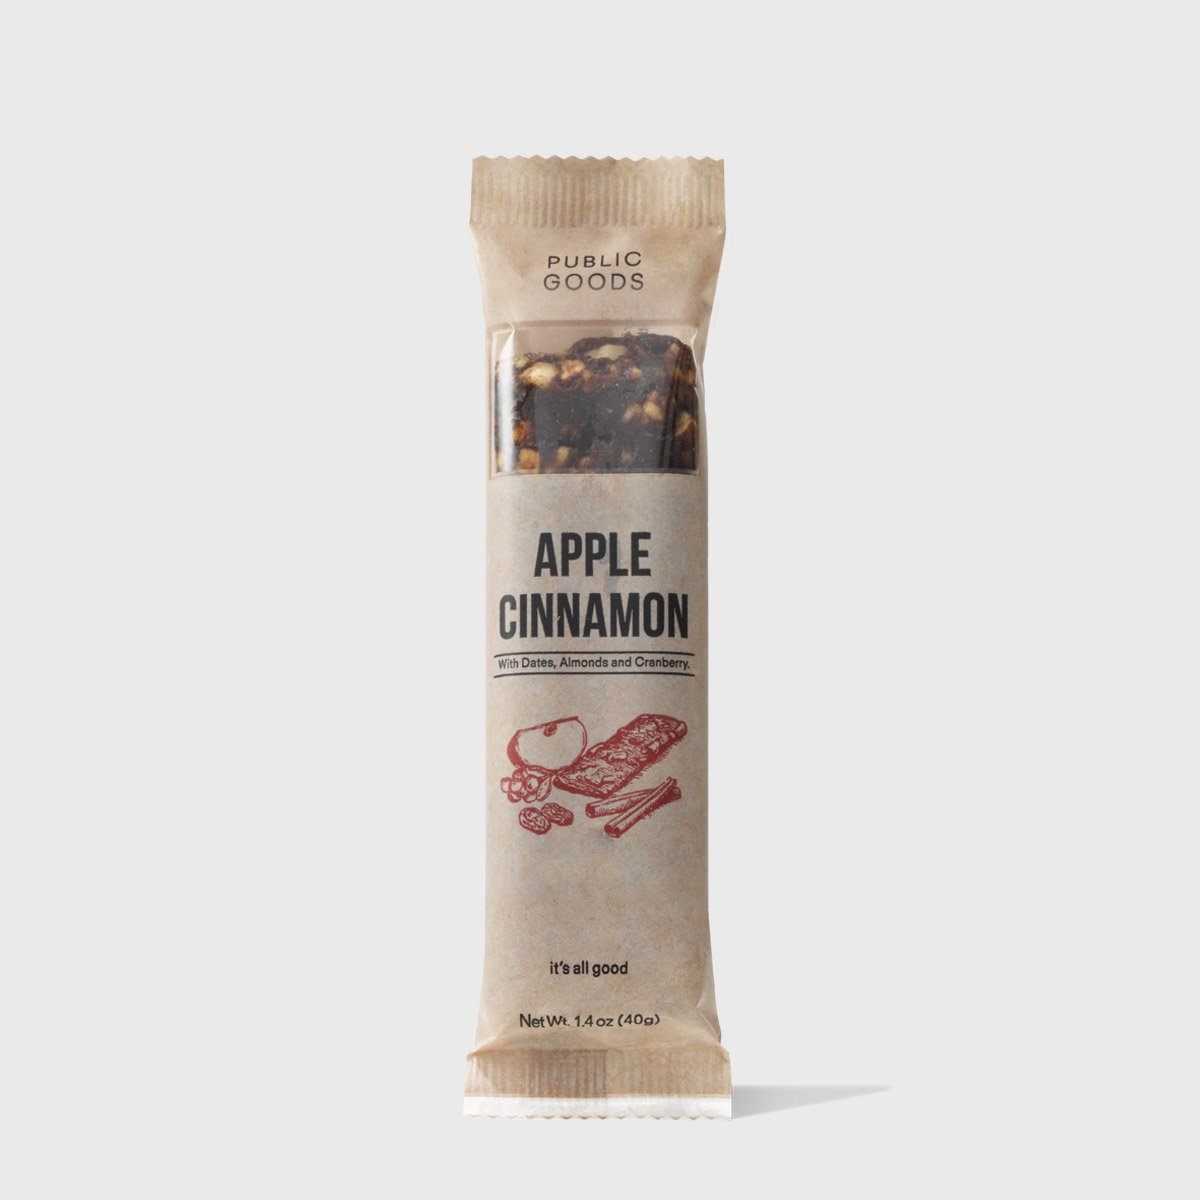 Apple Cinnamon Snack Bar 12 ct (Case of 8)